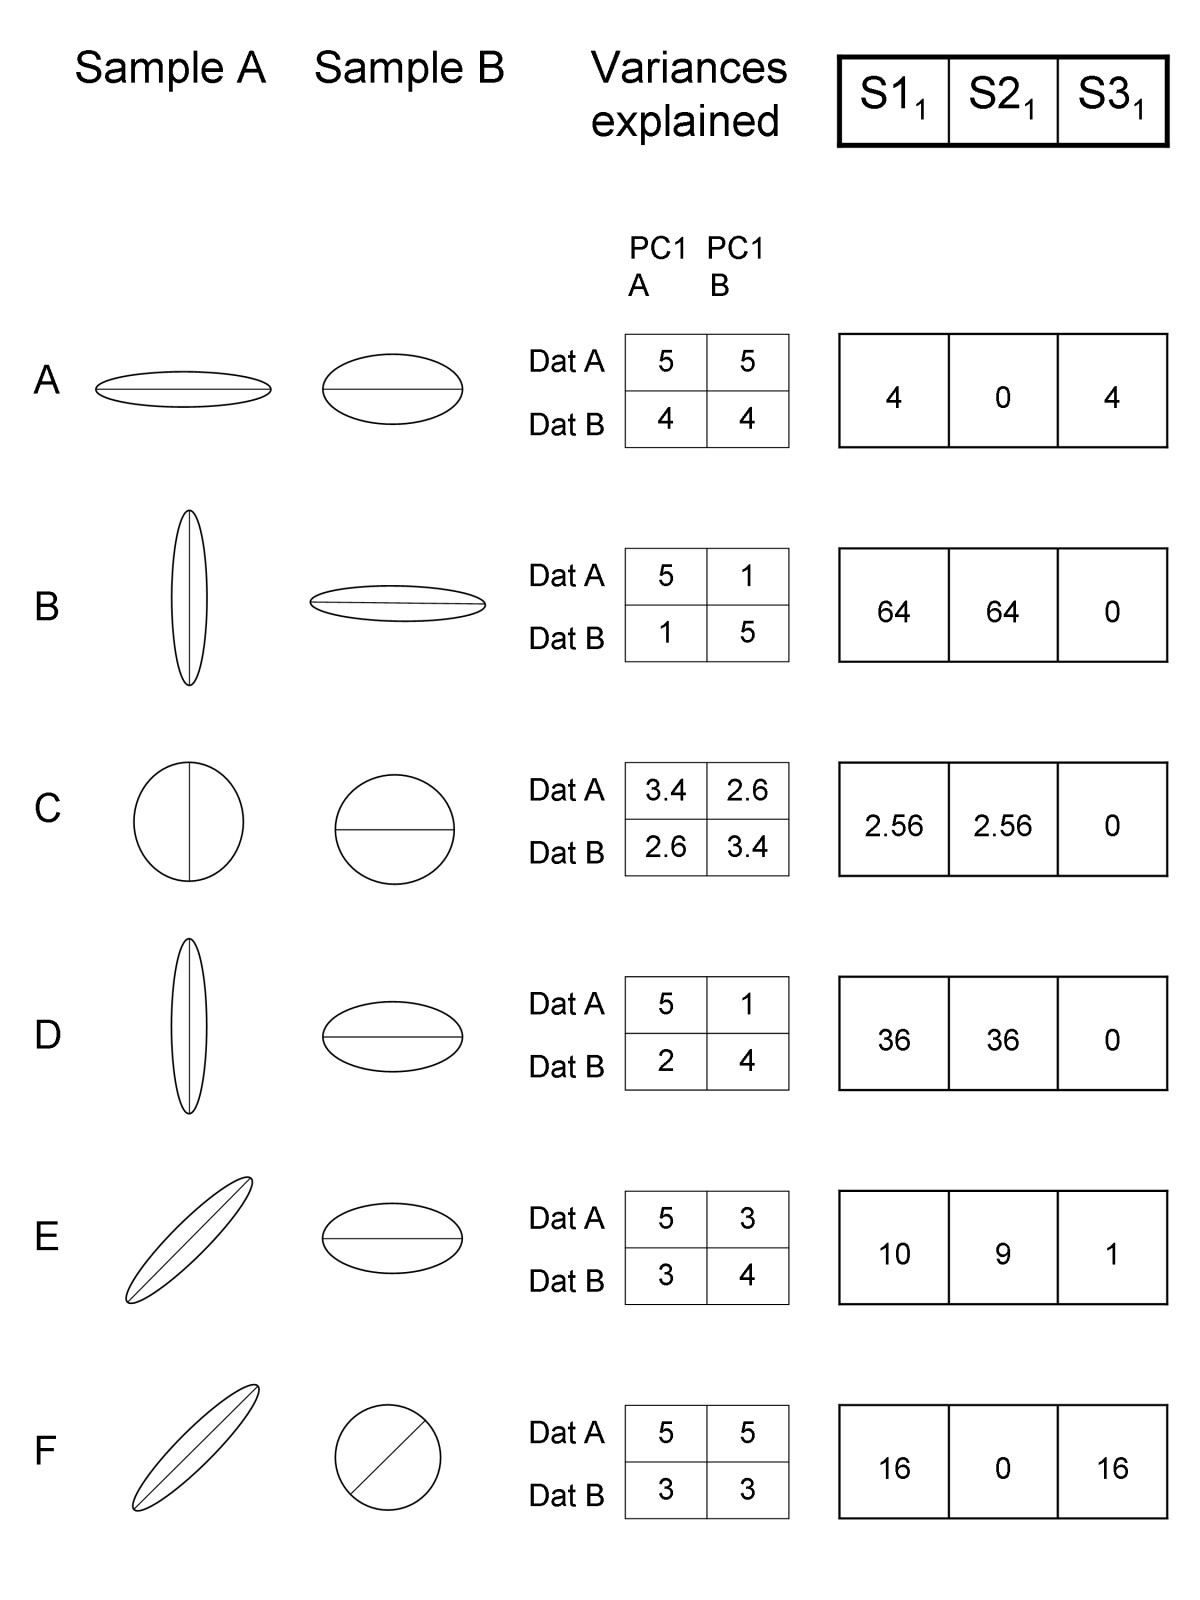 https://static-content.springer.com/image/art%3A10.1186%2F1471-2148-12-222/MediaObjects/12862_2012_Article_2258_Fig1_HTML.jpg